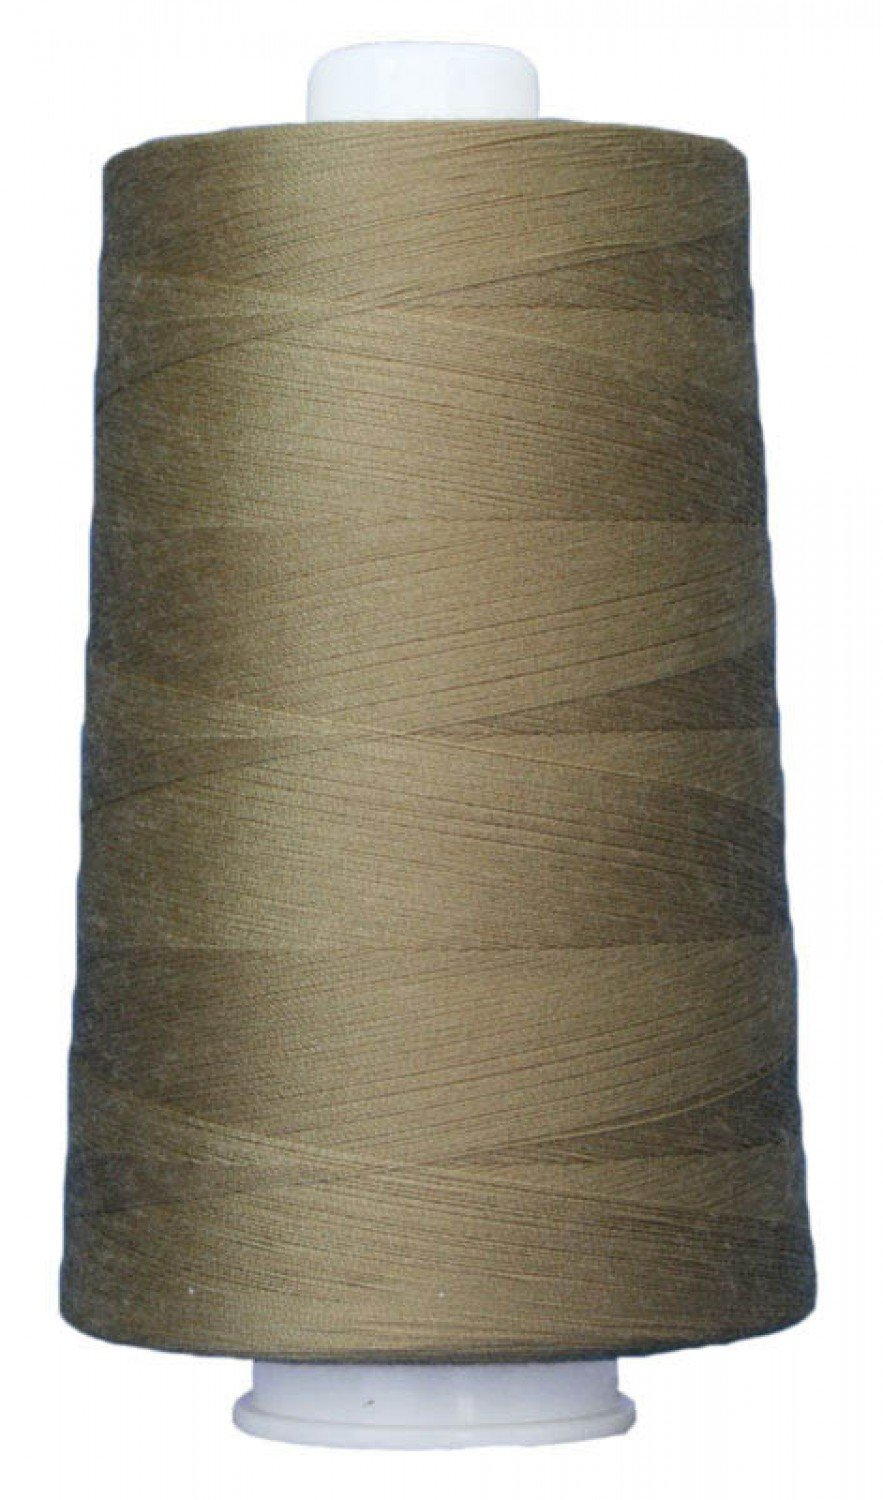 OMNI Polyester Thread 40 wt 6000 yds 3014 Maple by Superior